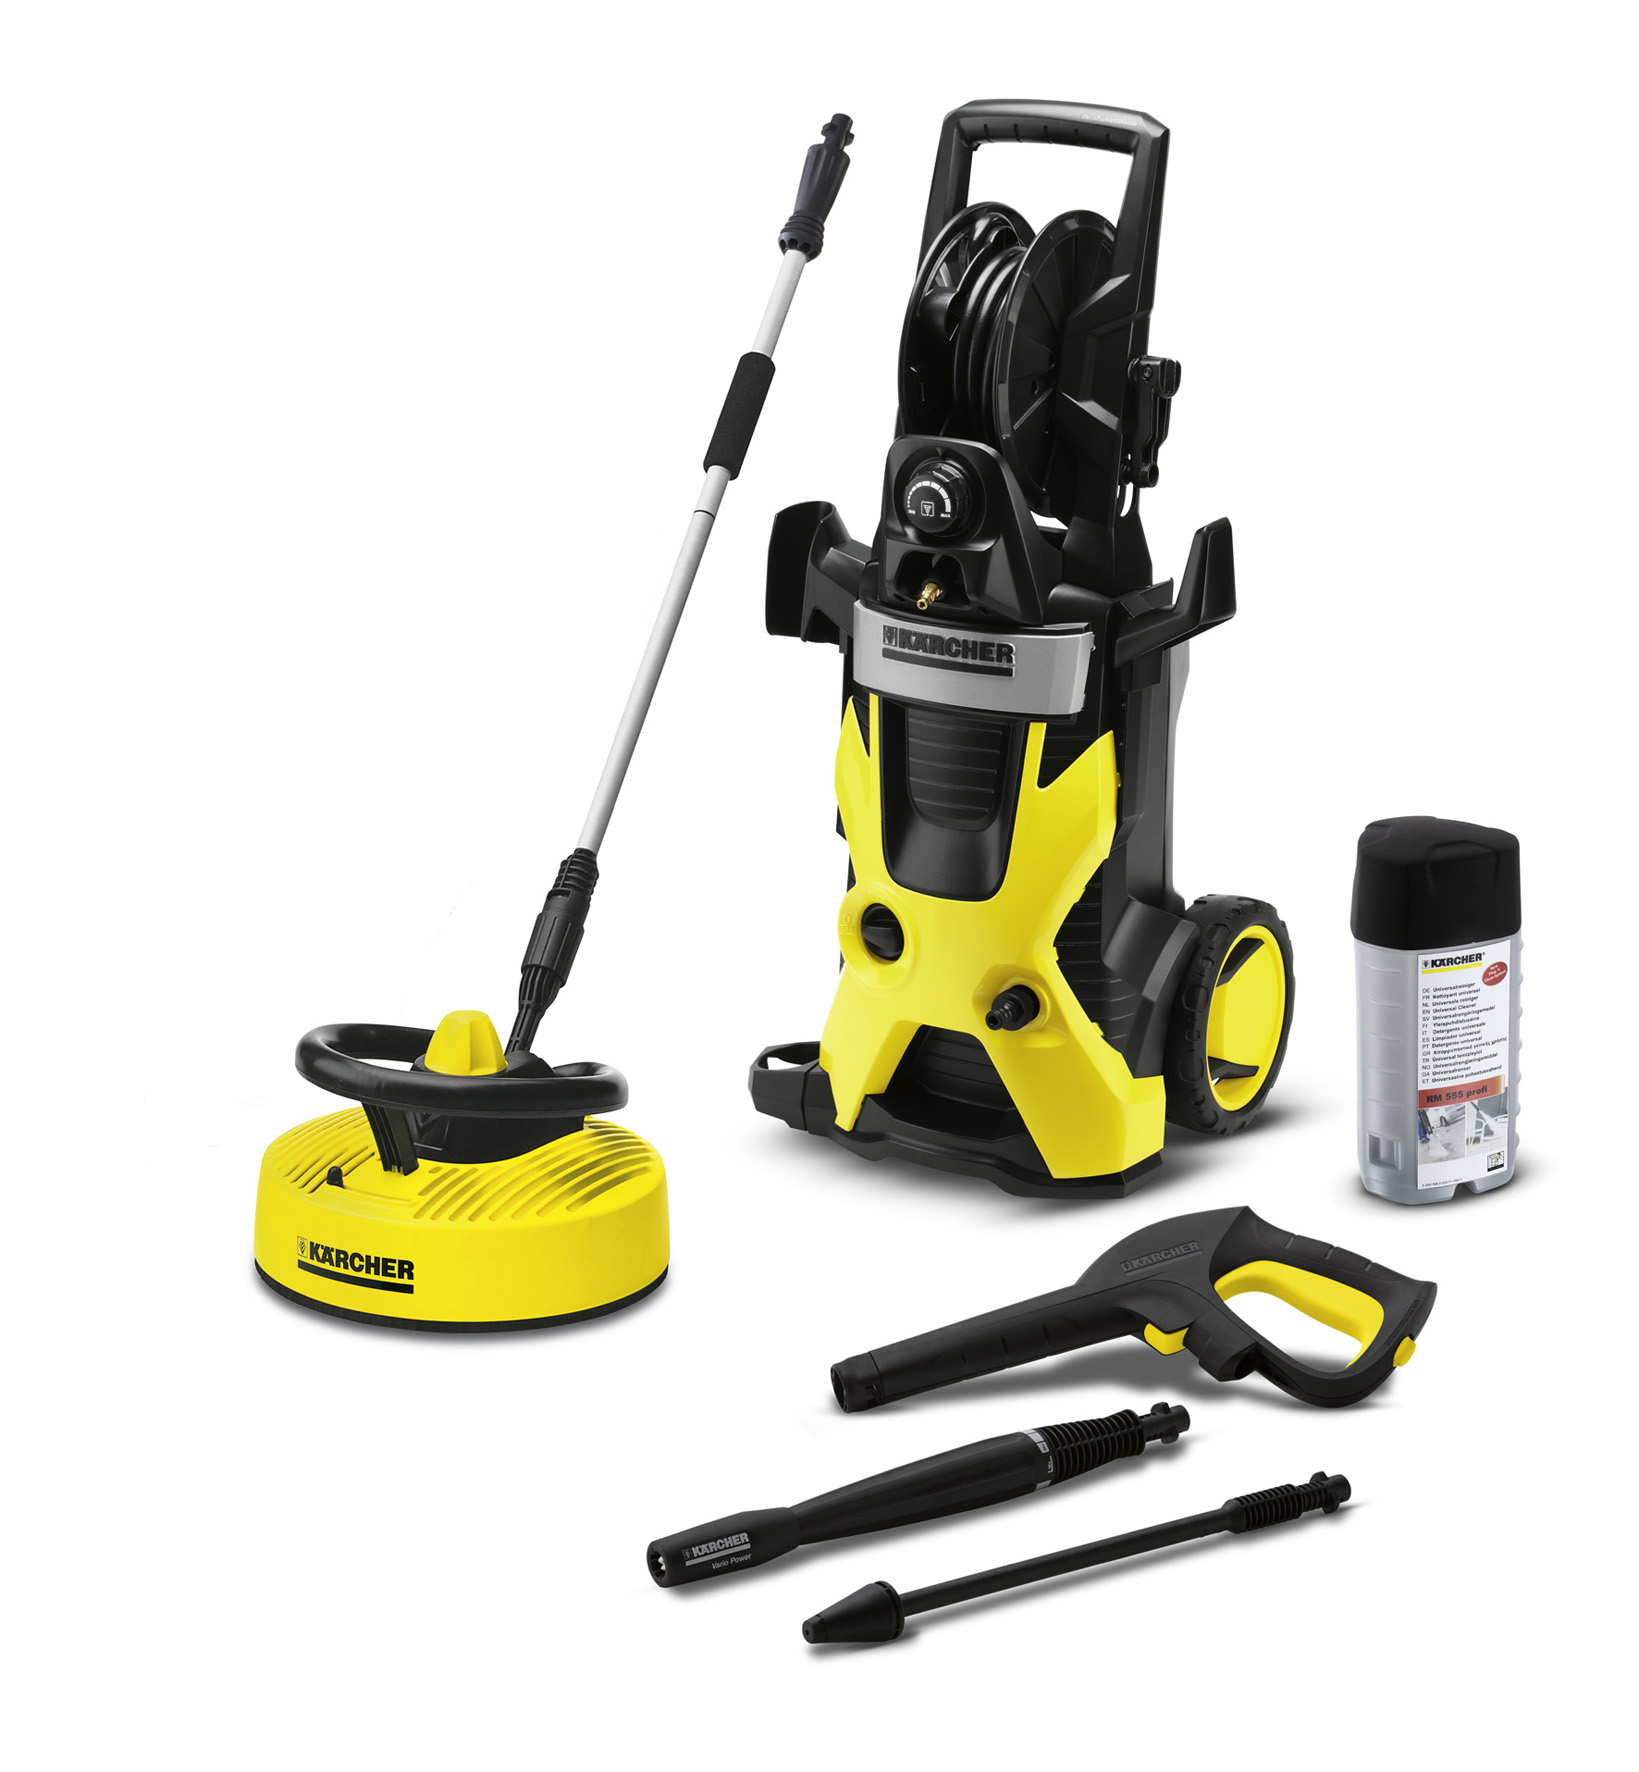 karcher k 5 upright car pressure washer product. Black Bedroom Furniture Sets. Home Design Ideas